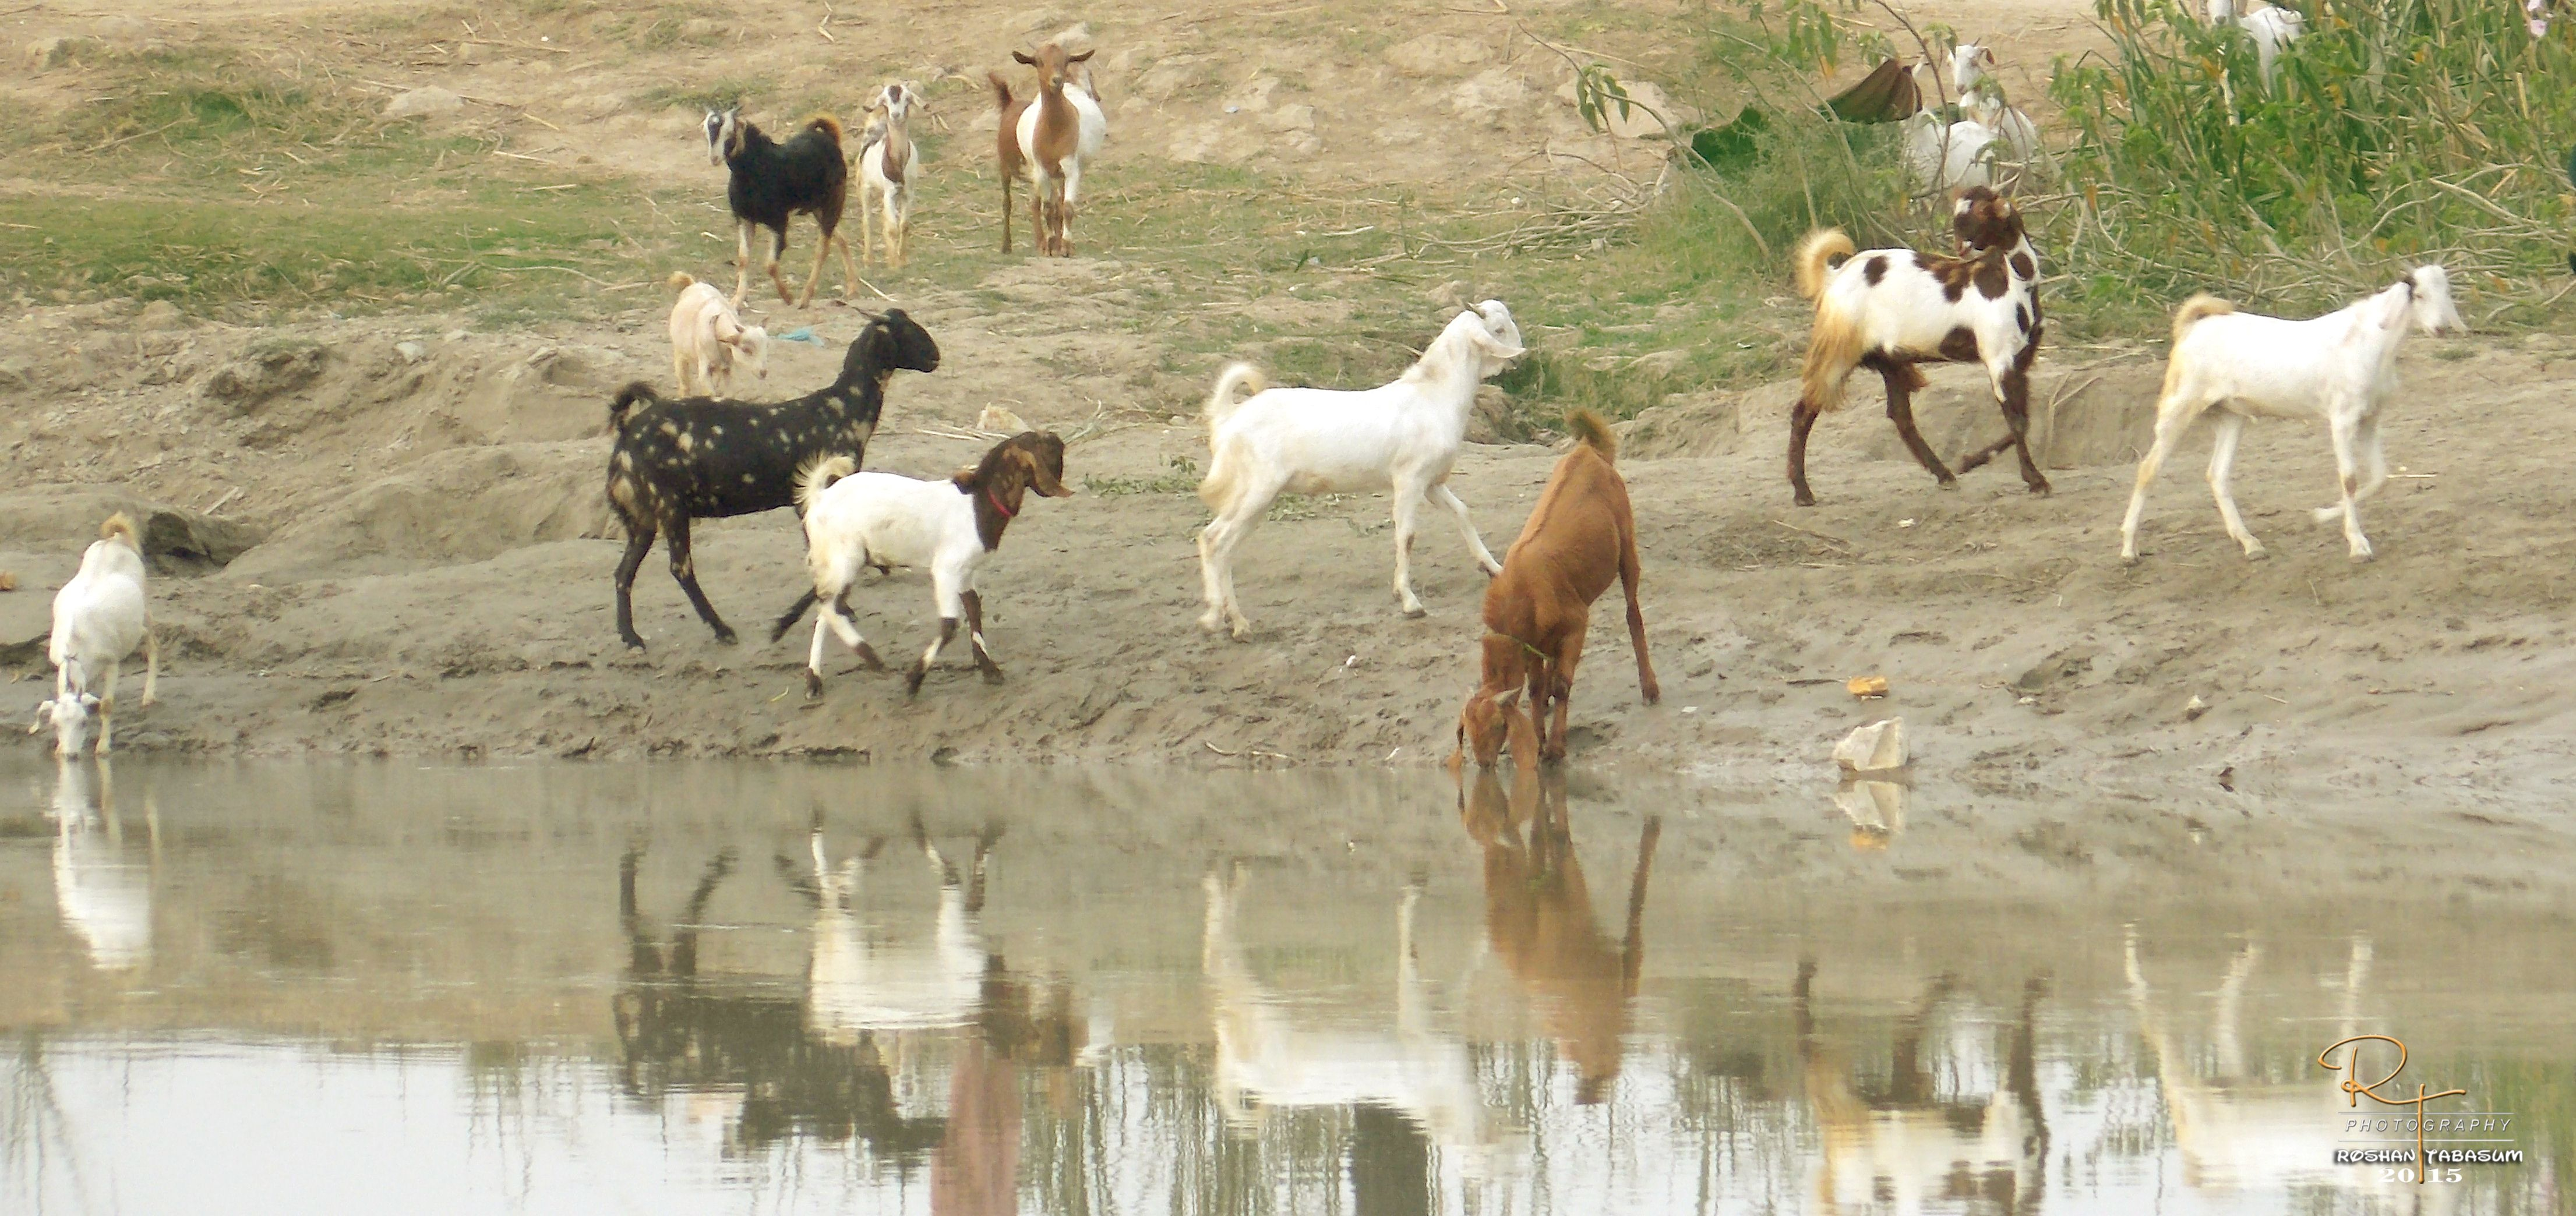 goats drinking water in river sindh culture pinterest drinking